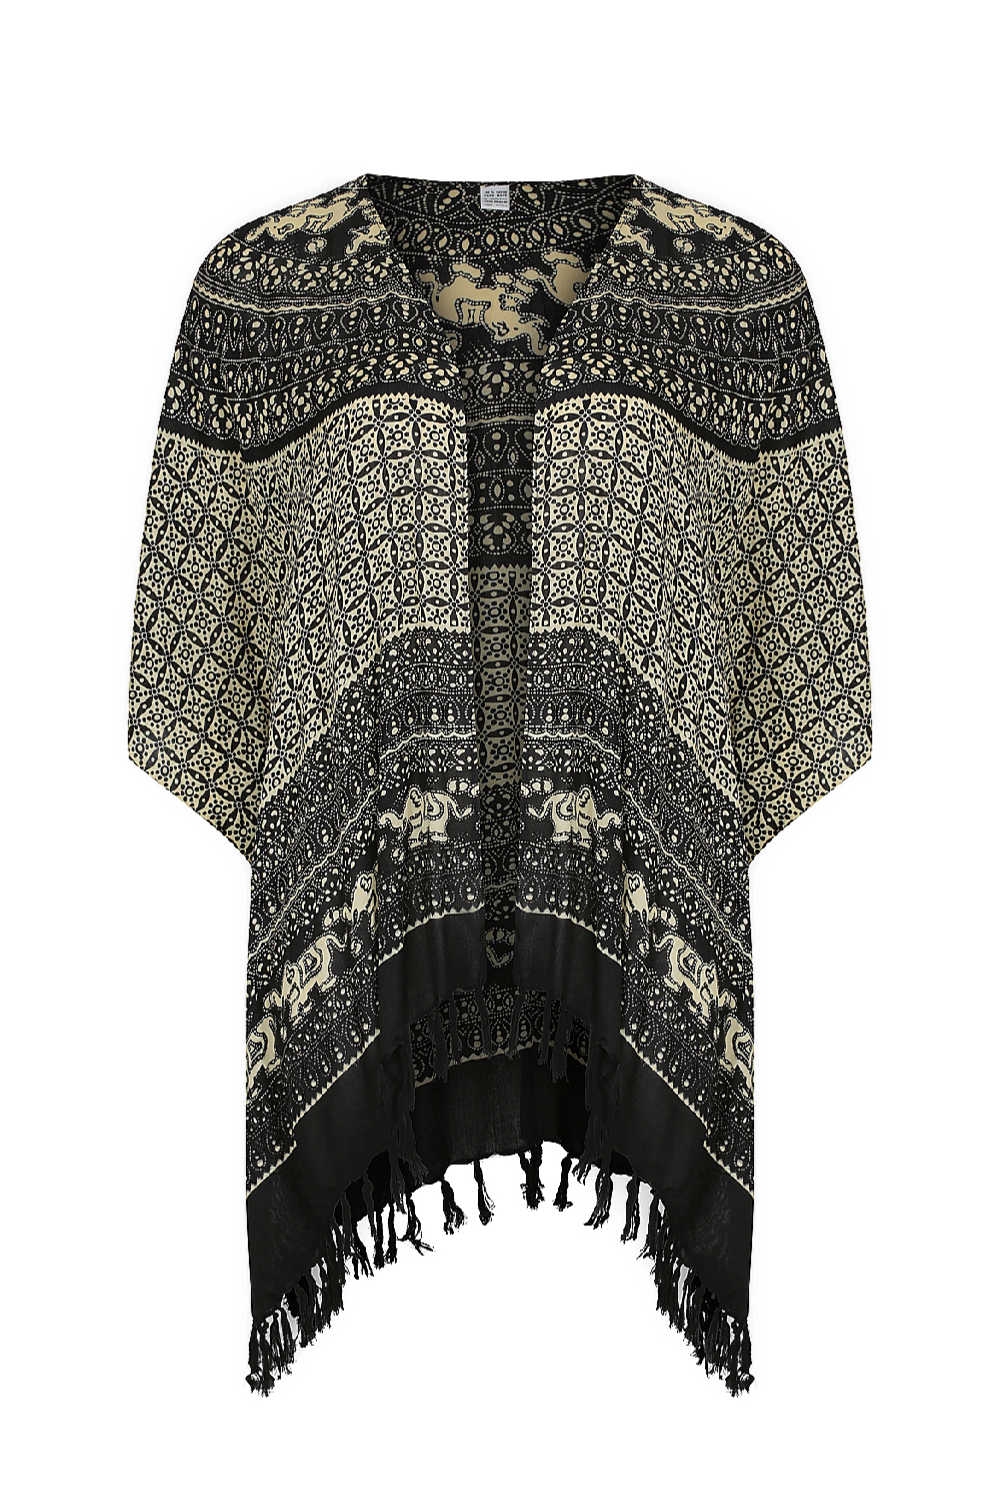 kimono-jacket-beach-cover-up-black-grey-elephant-mandala.jpg